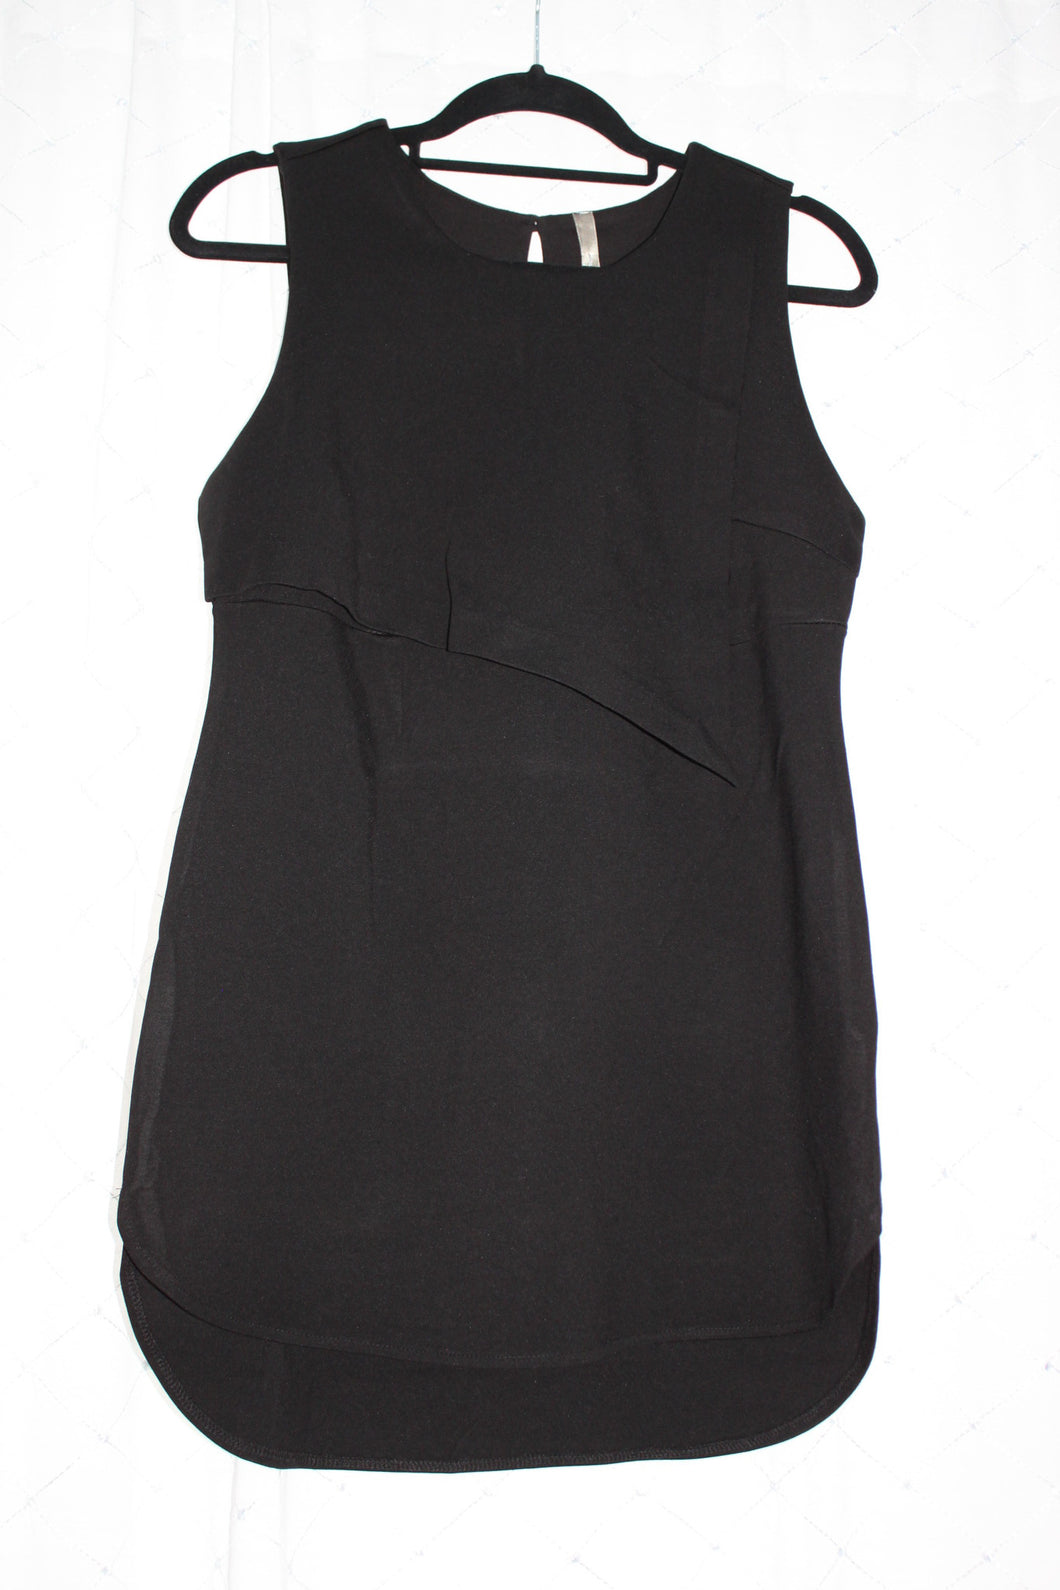 fe7c0a79c5a M Thyme Maternity Sleeveless black Top New – Happily Ever After ...